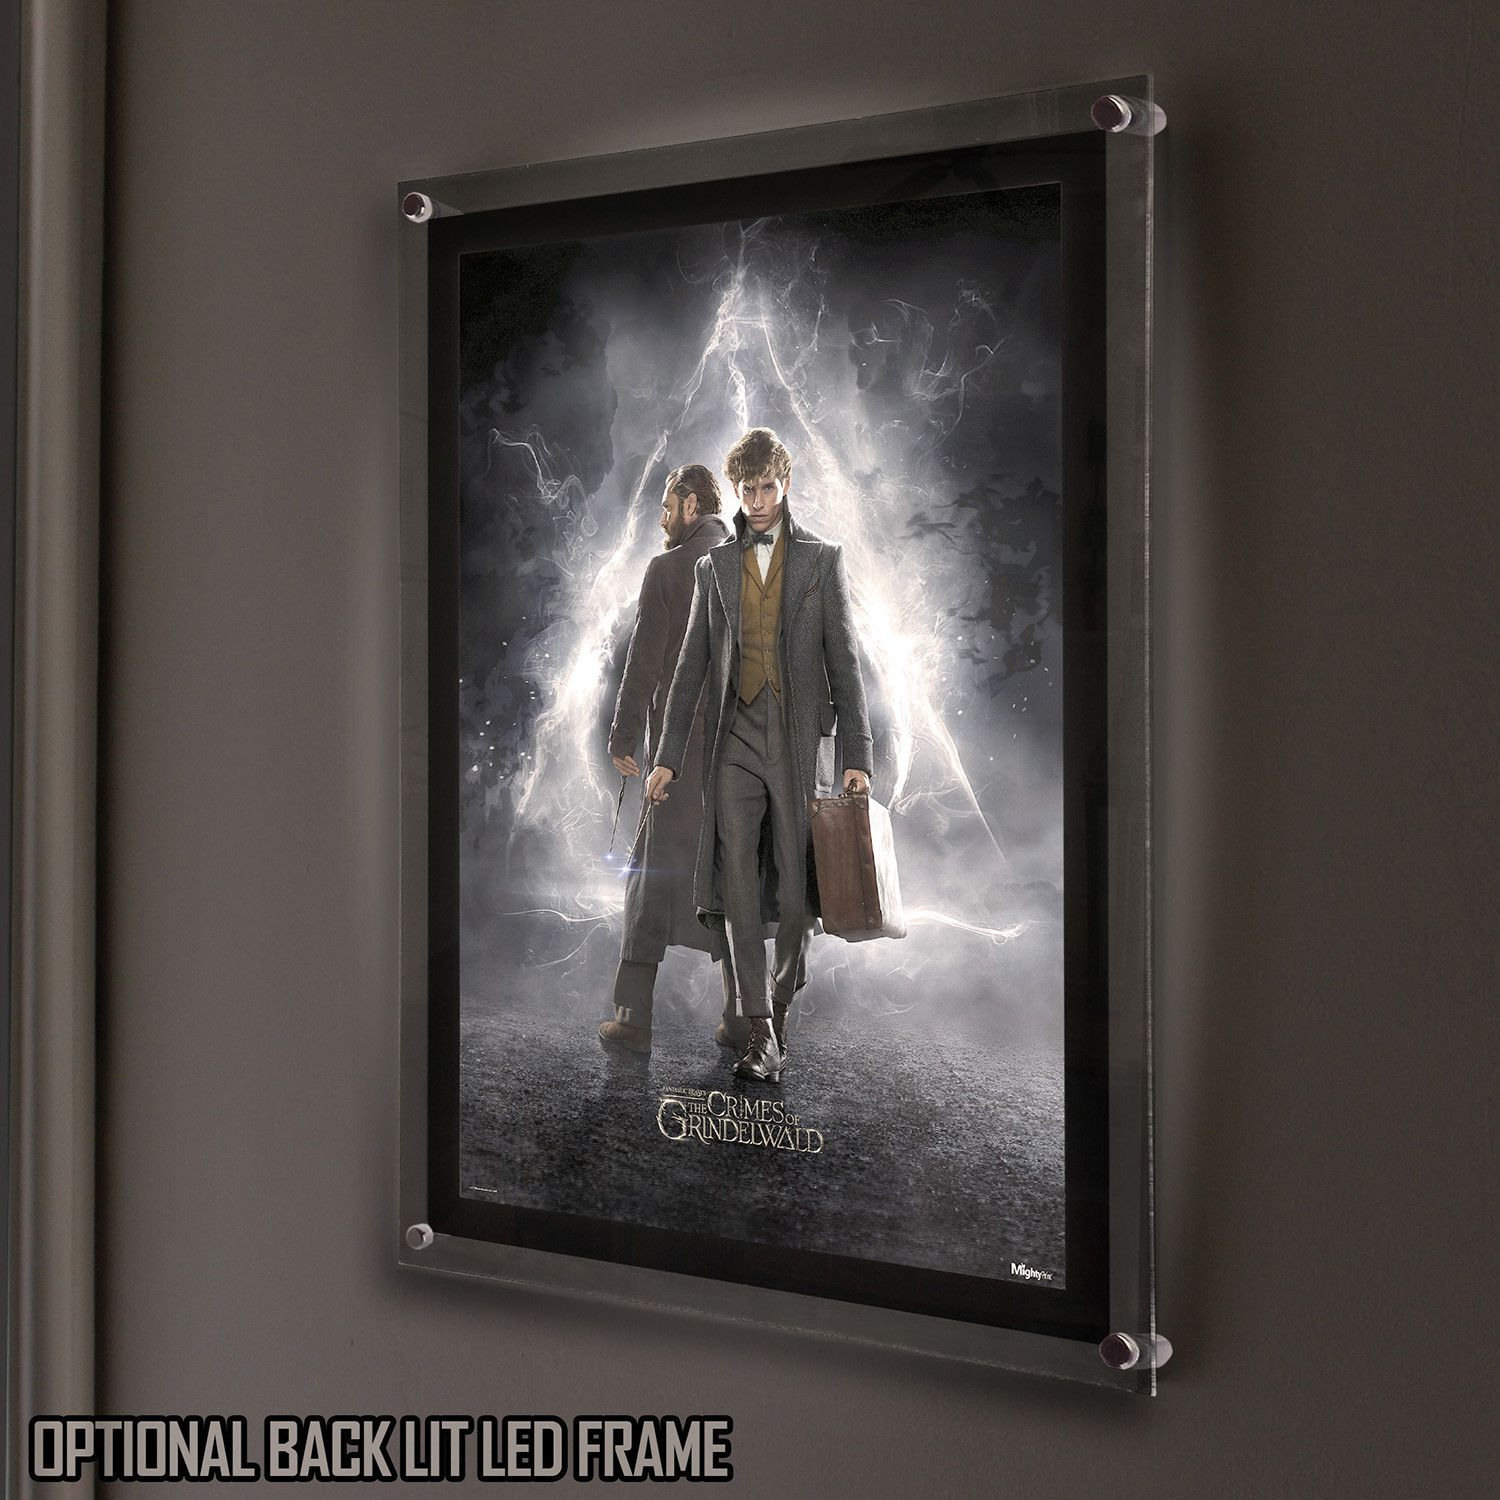 Fantastic Beasts 2 Mightyprint Backlit Led Frame Fantastic Beasts Fantastic Beasts 2 Beast